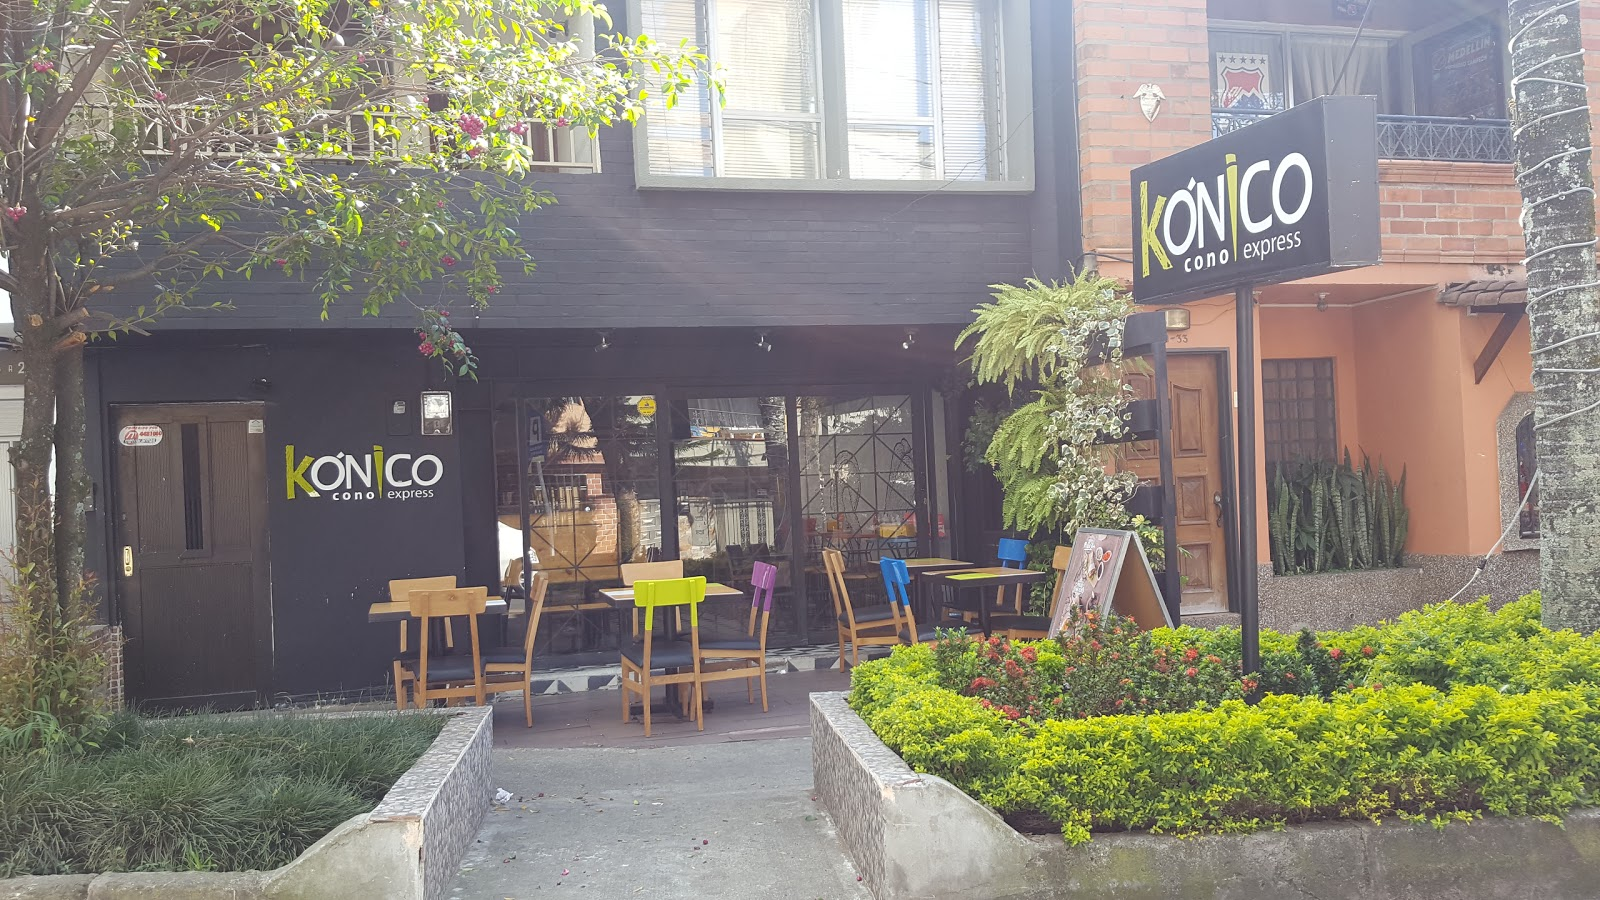 Cocolatte Café: A Work-Friendly Place in Medellin